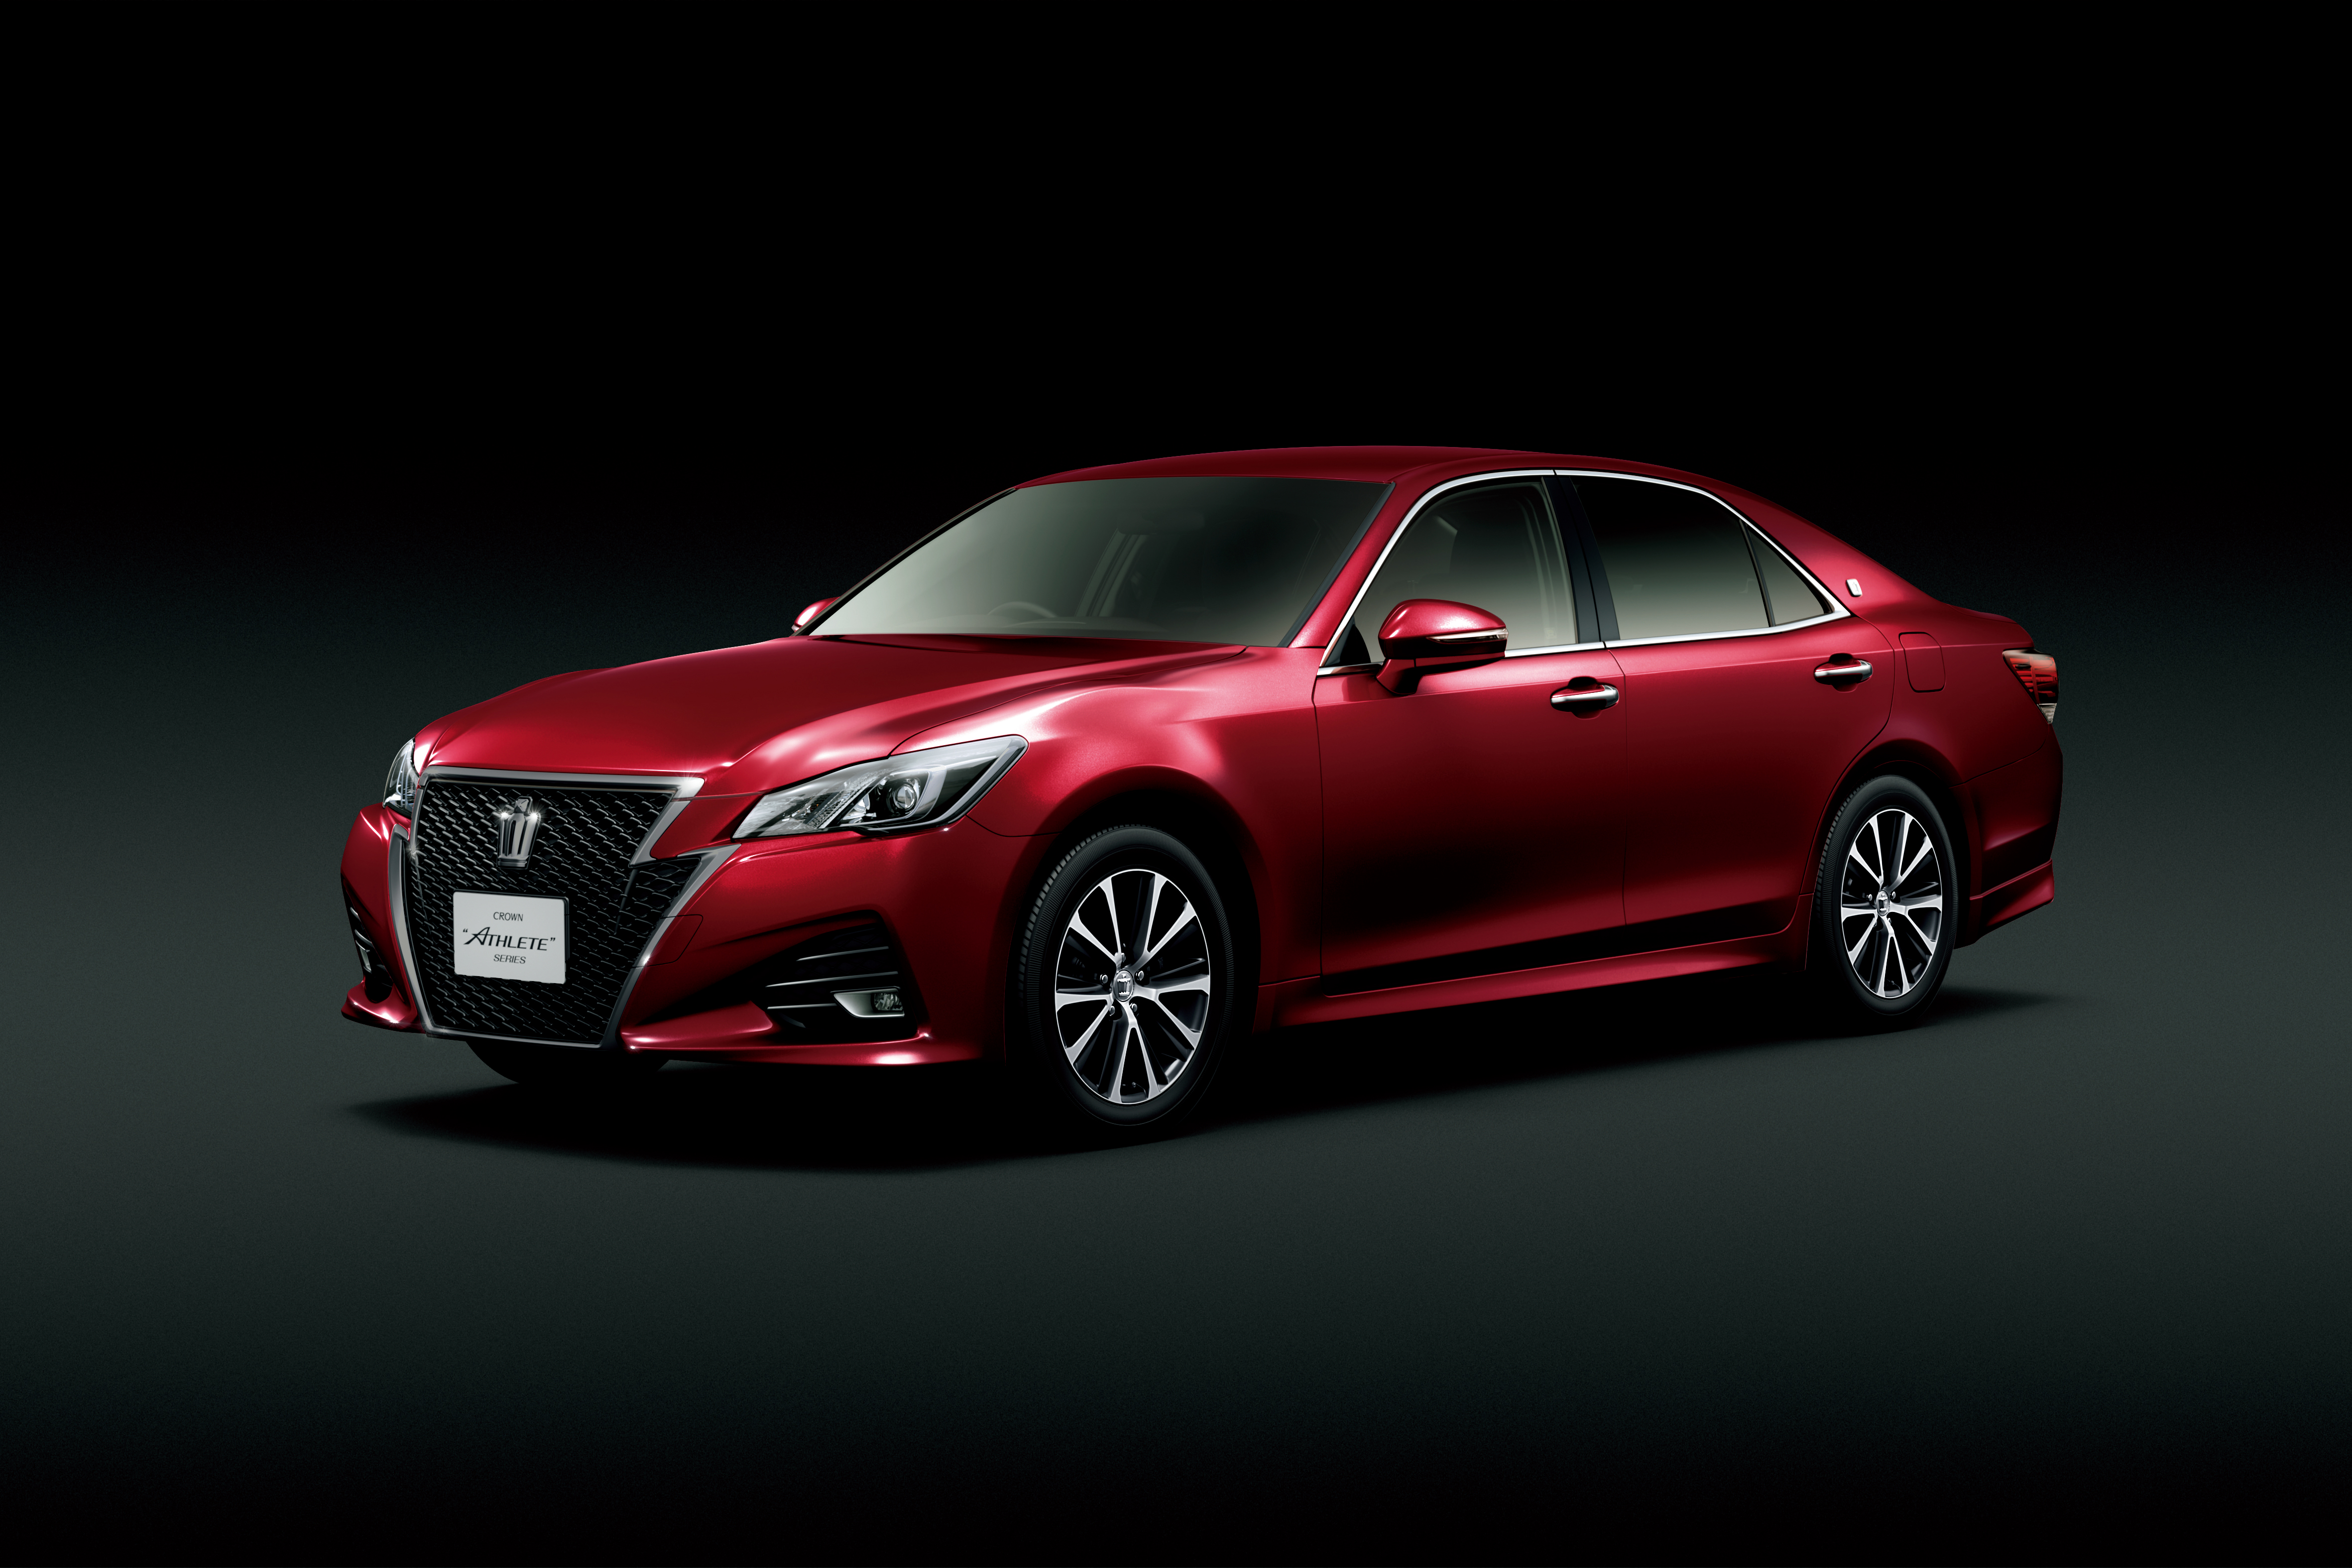 Toyota Crown Facelift Gets New 2 0 Litre Turbo Engine